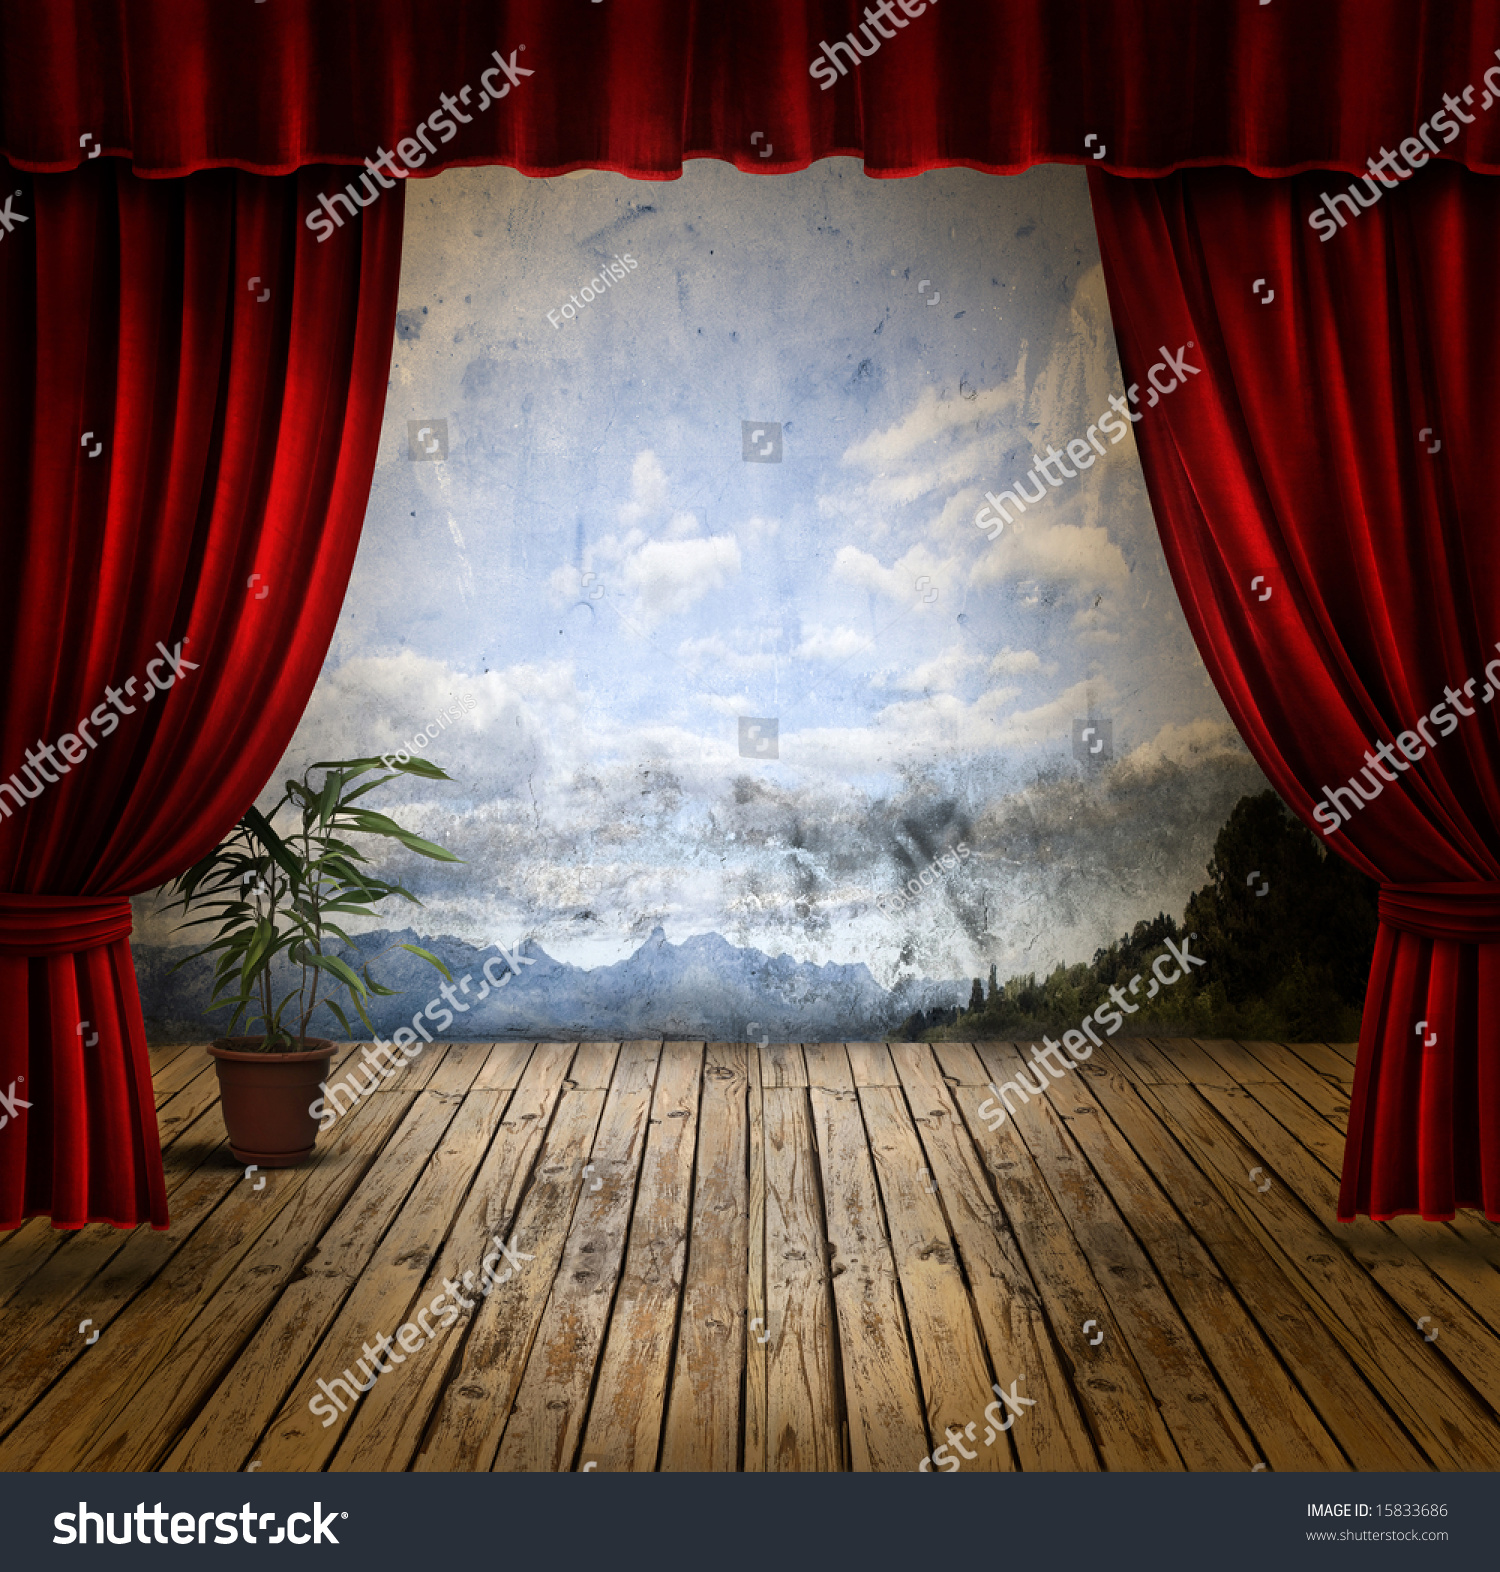 Theatre curtains png - Theatre Curtains Png Small Stage With Red Velvet Theater Curtains